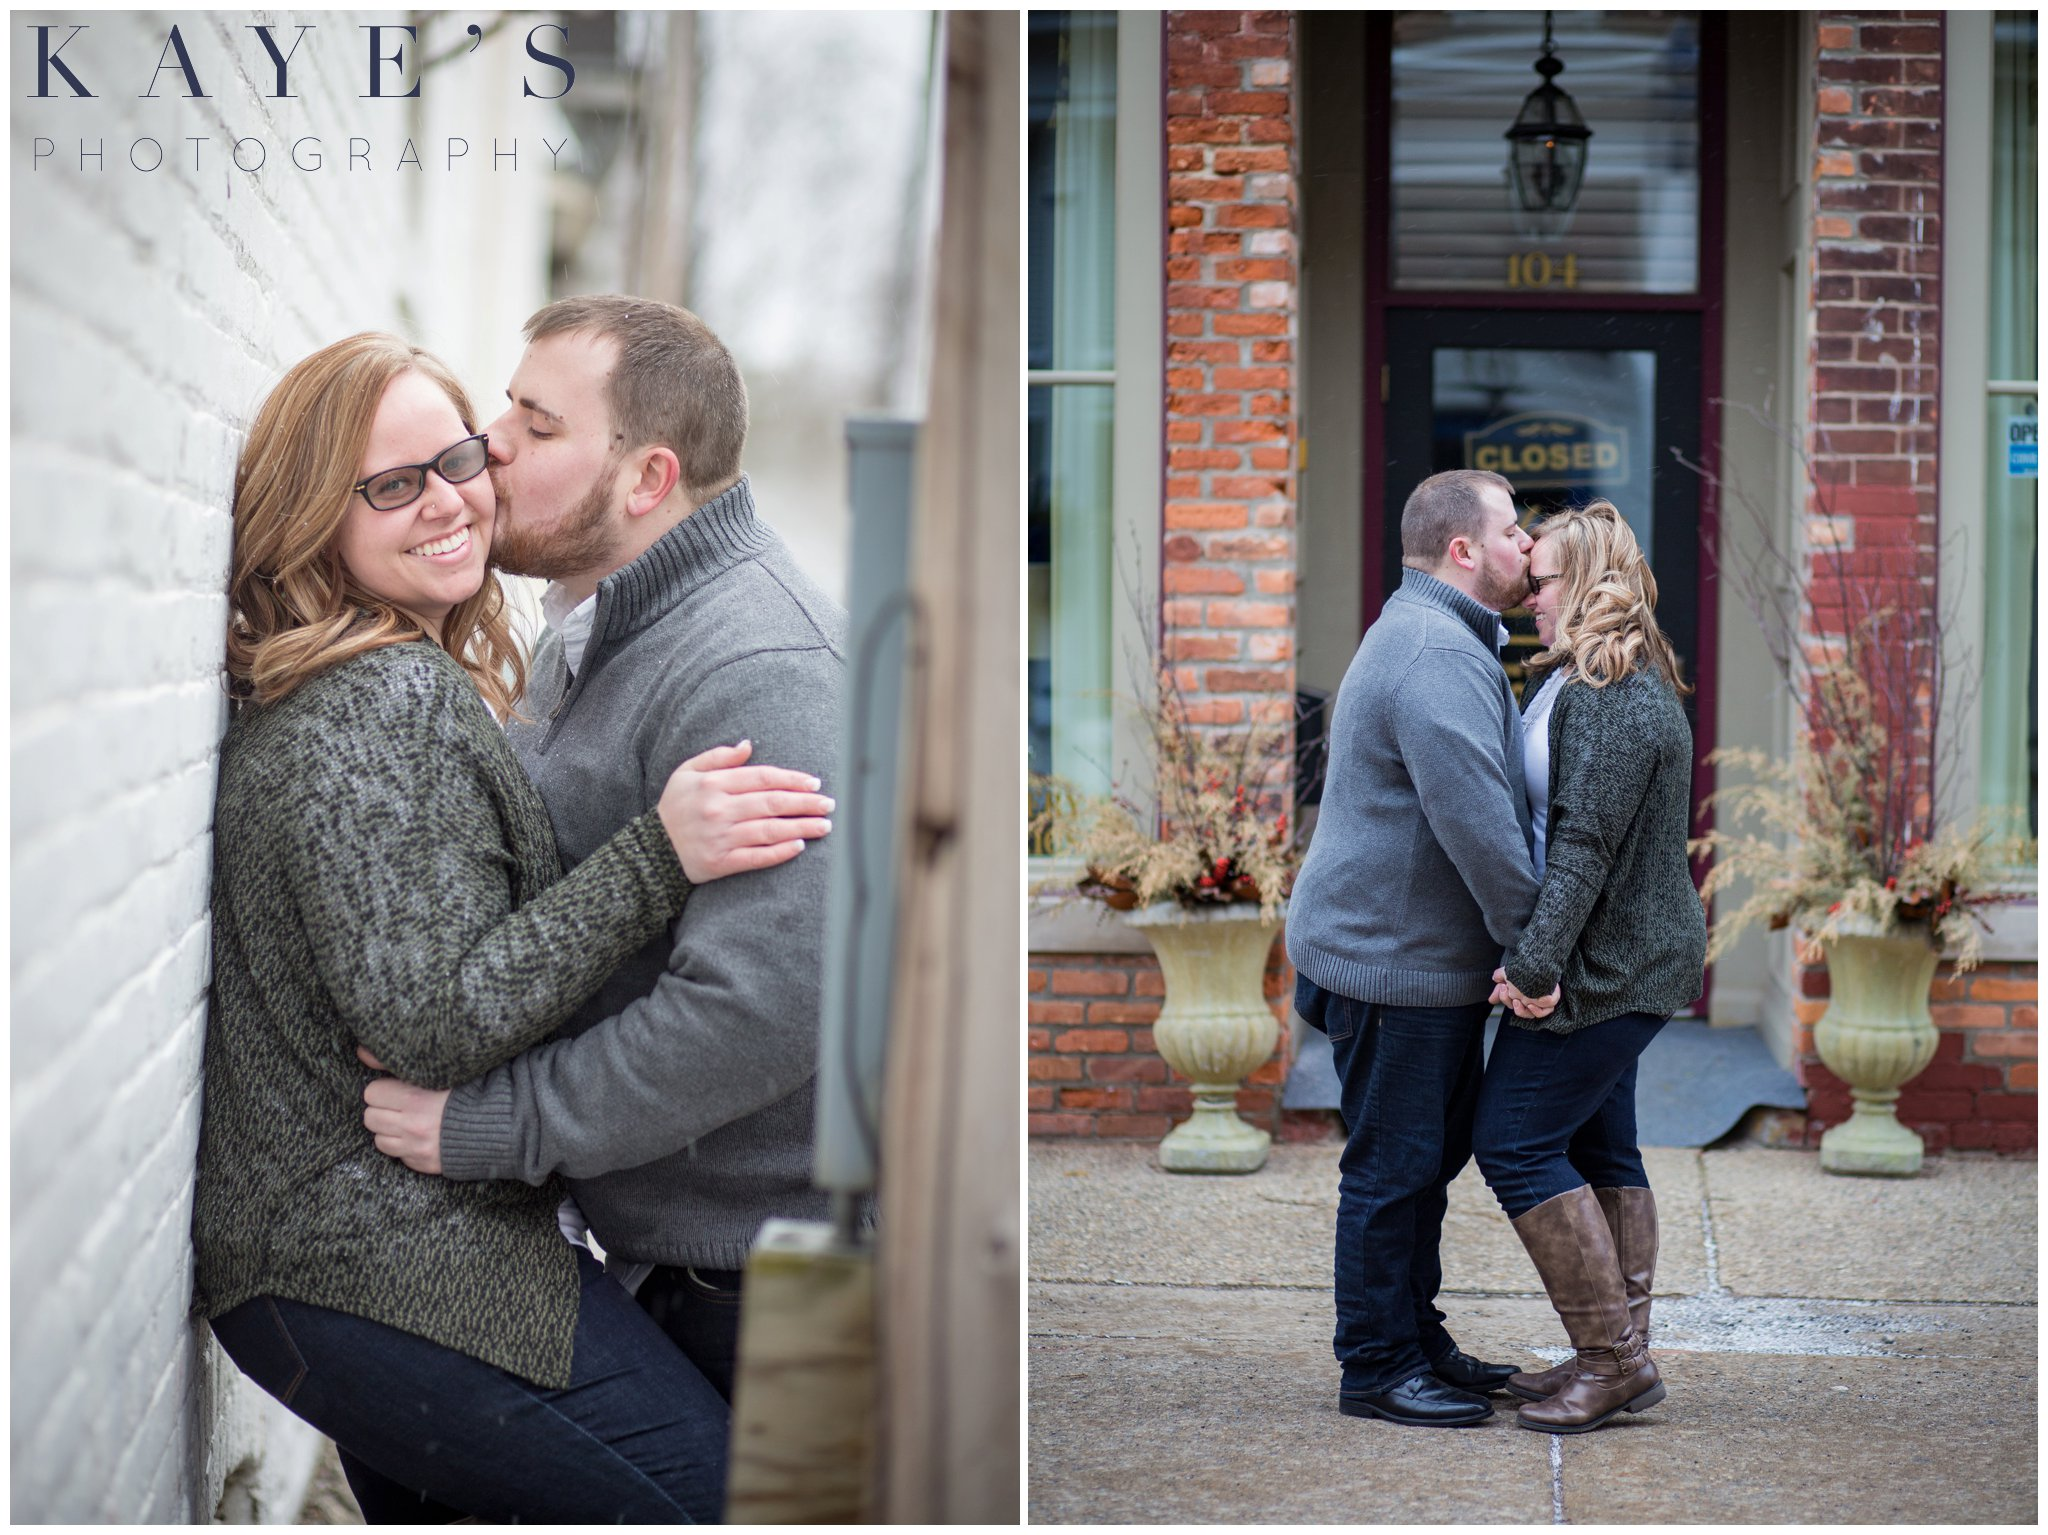 Grand blanc, Michigan engagement session with couple hugging and laughing during their engagement photos